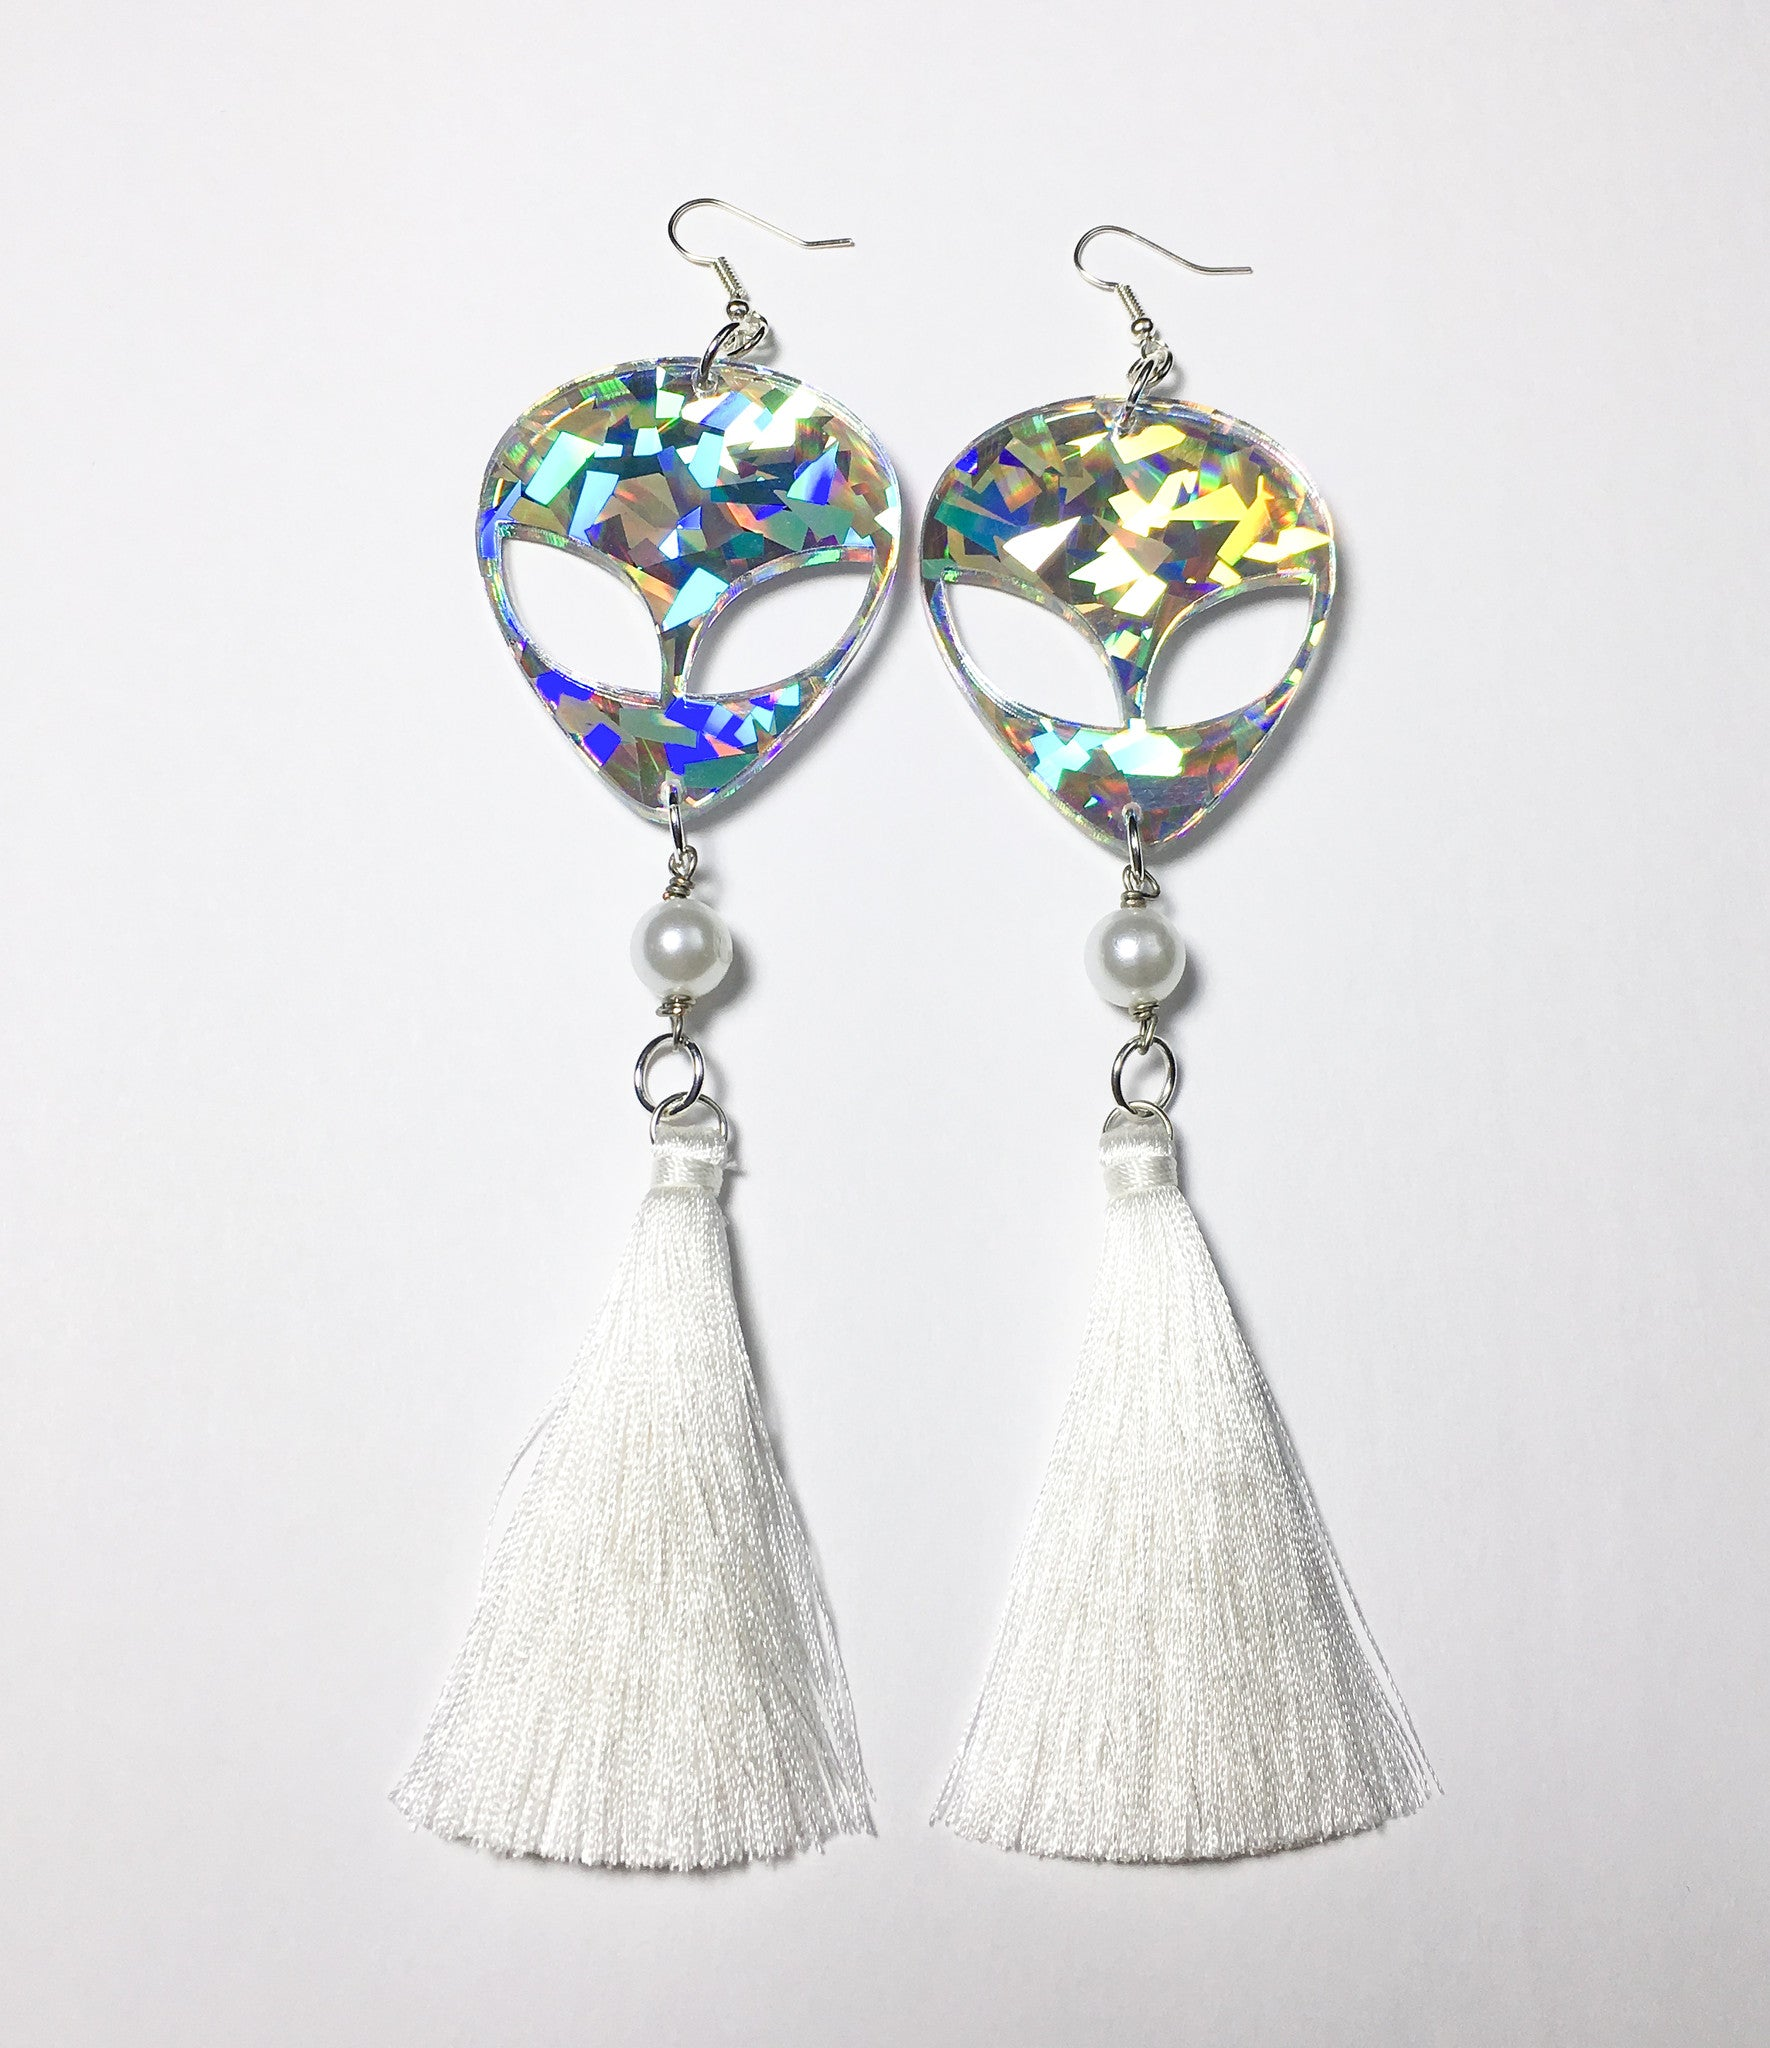 TRIXY STARR - Alien Tassel Earrings, Holographic - The Giant Peach